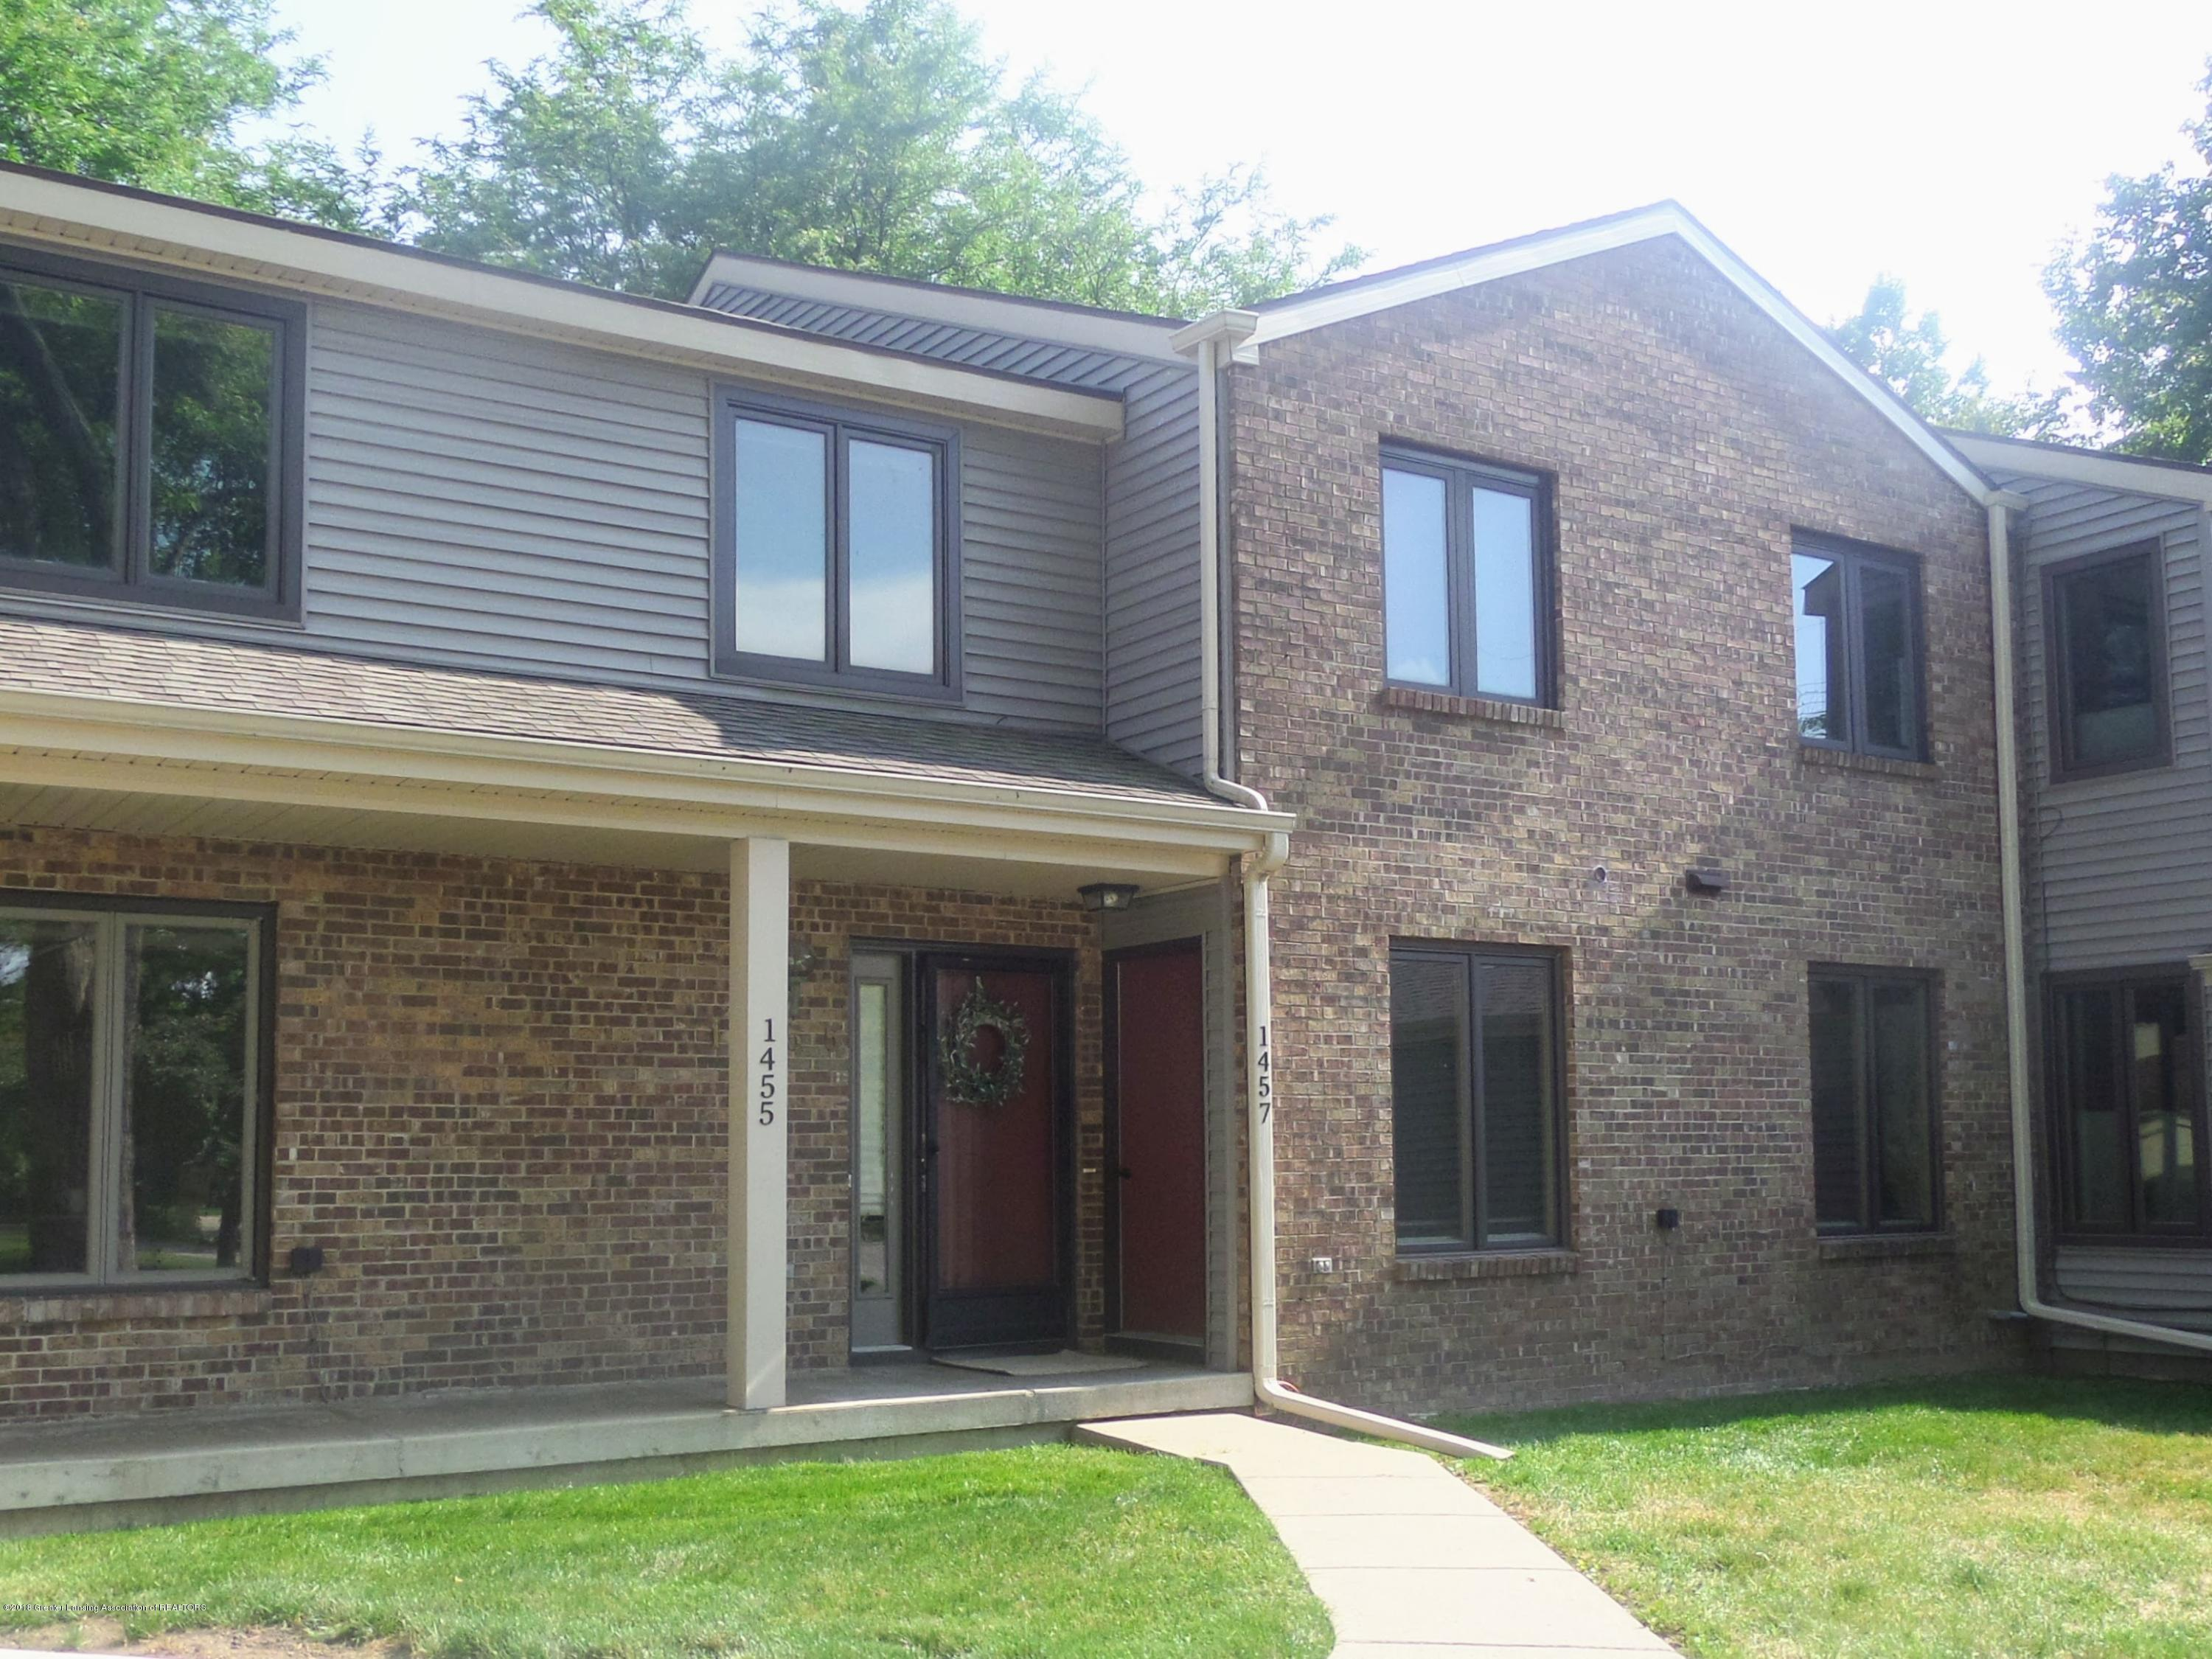 1455 Lakeside Dr - Front View - 17